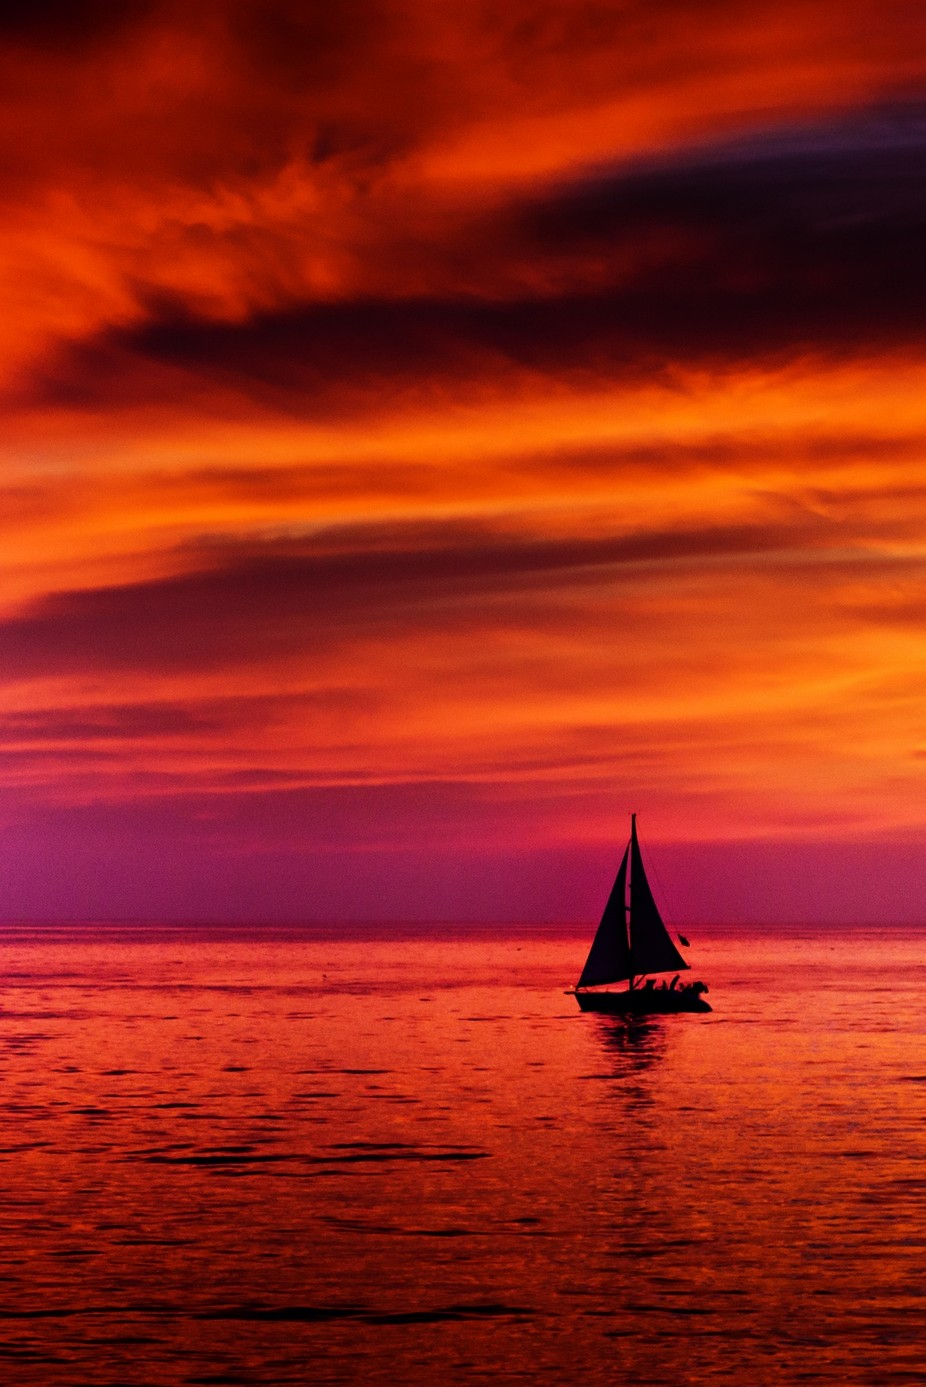 A boat sailing during the one of the most beutiful sunset which I have ever seen at Venice Beach, CA